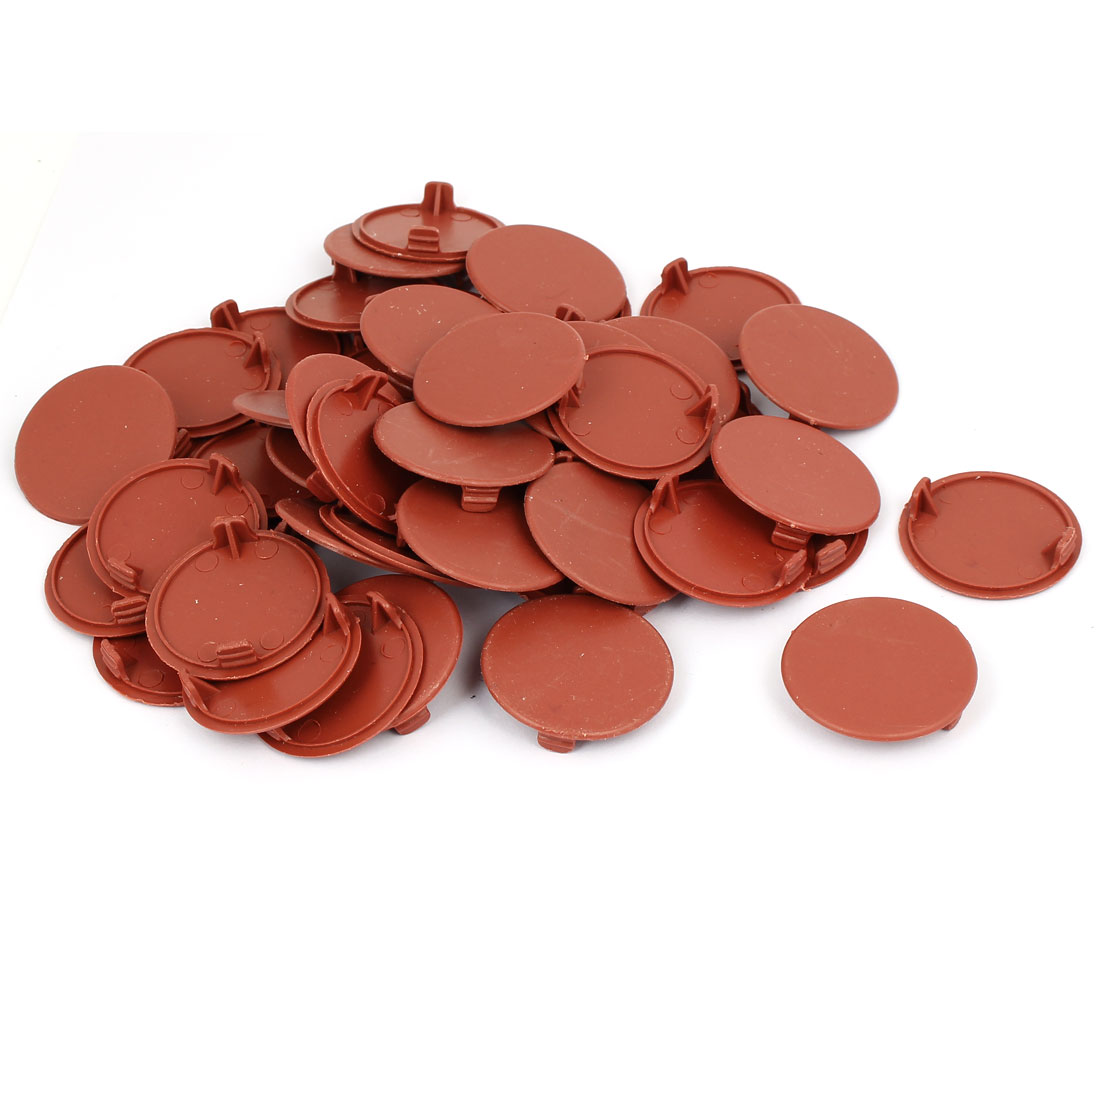 40mm 1.6-inch Diameter Plastic Round Head Hole Cap Cover Brown 50pcs